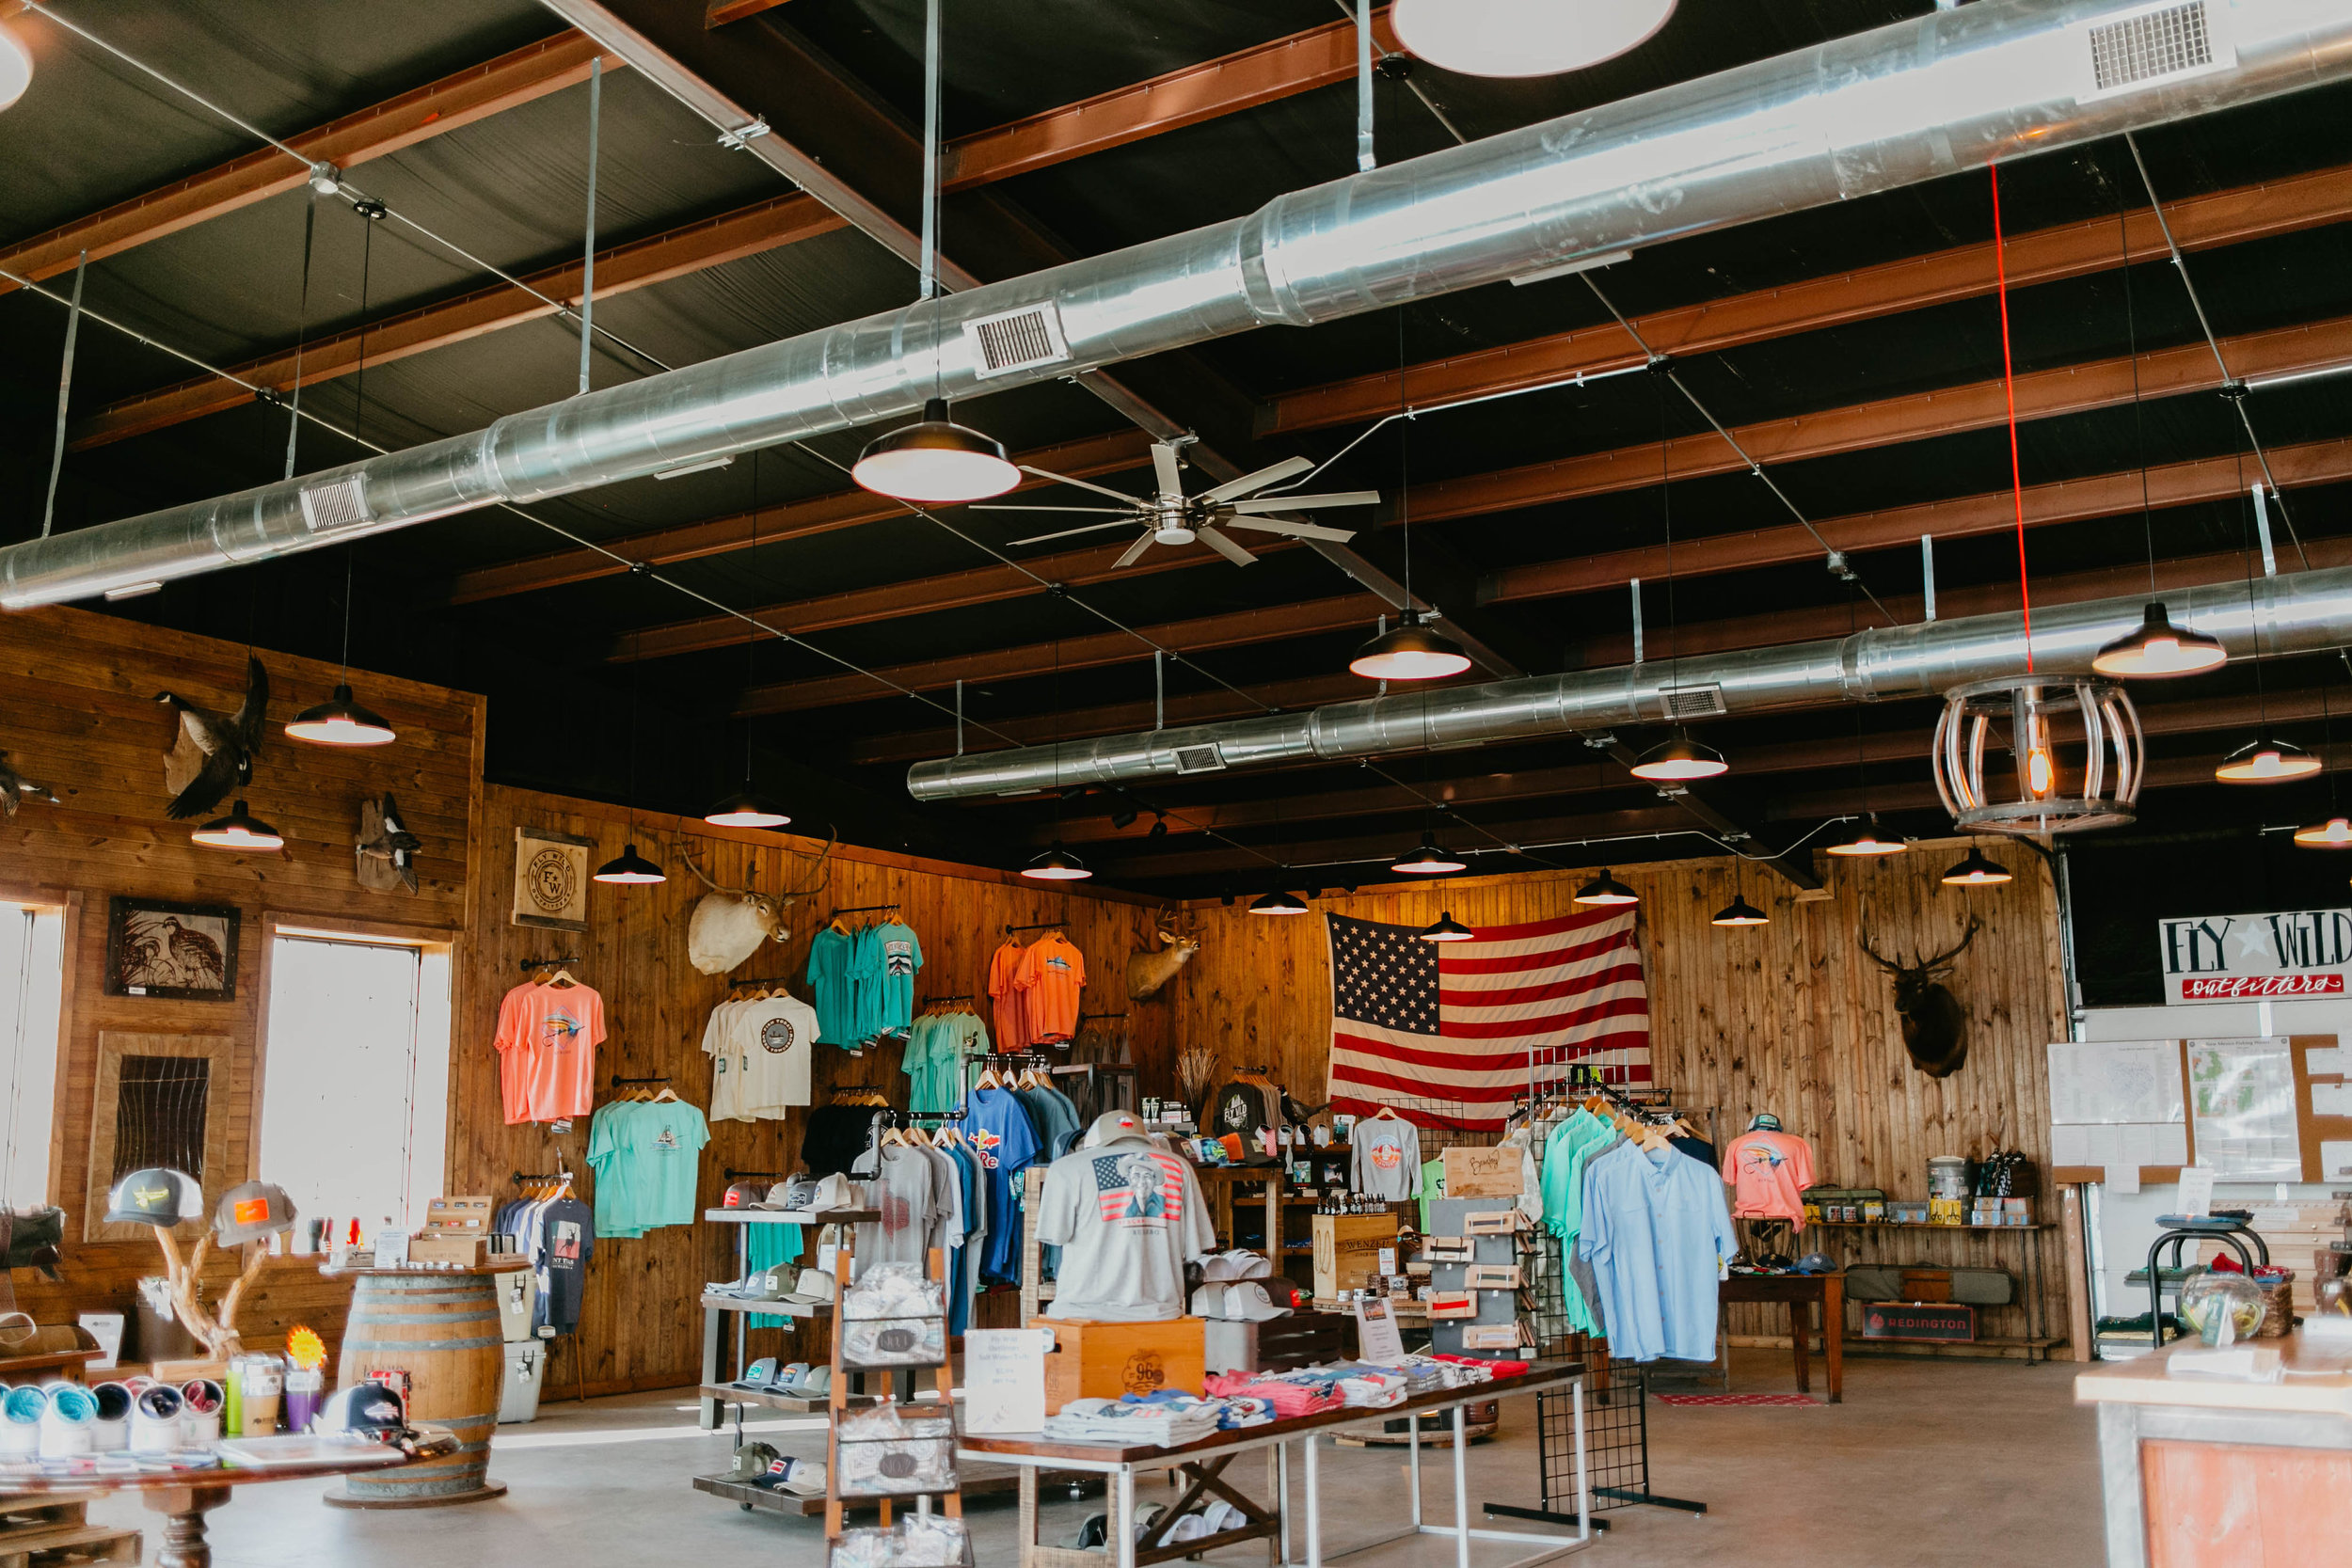 Our recommendation - Fly Wild Outfitters is a great spot to shop for guys who love to go hunting, fishing, and exploring the outdoors. With so many unique brands you're bound to find an item that you'll be proud to own.